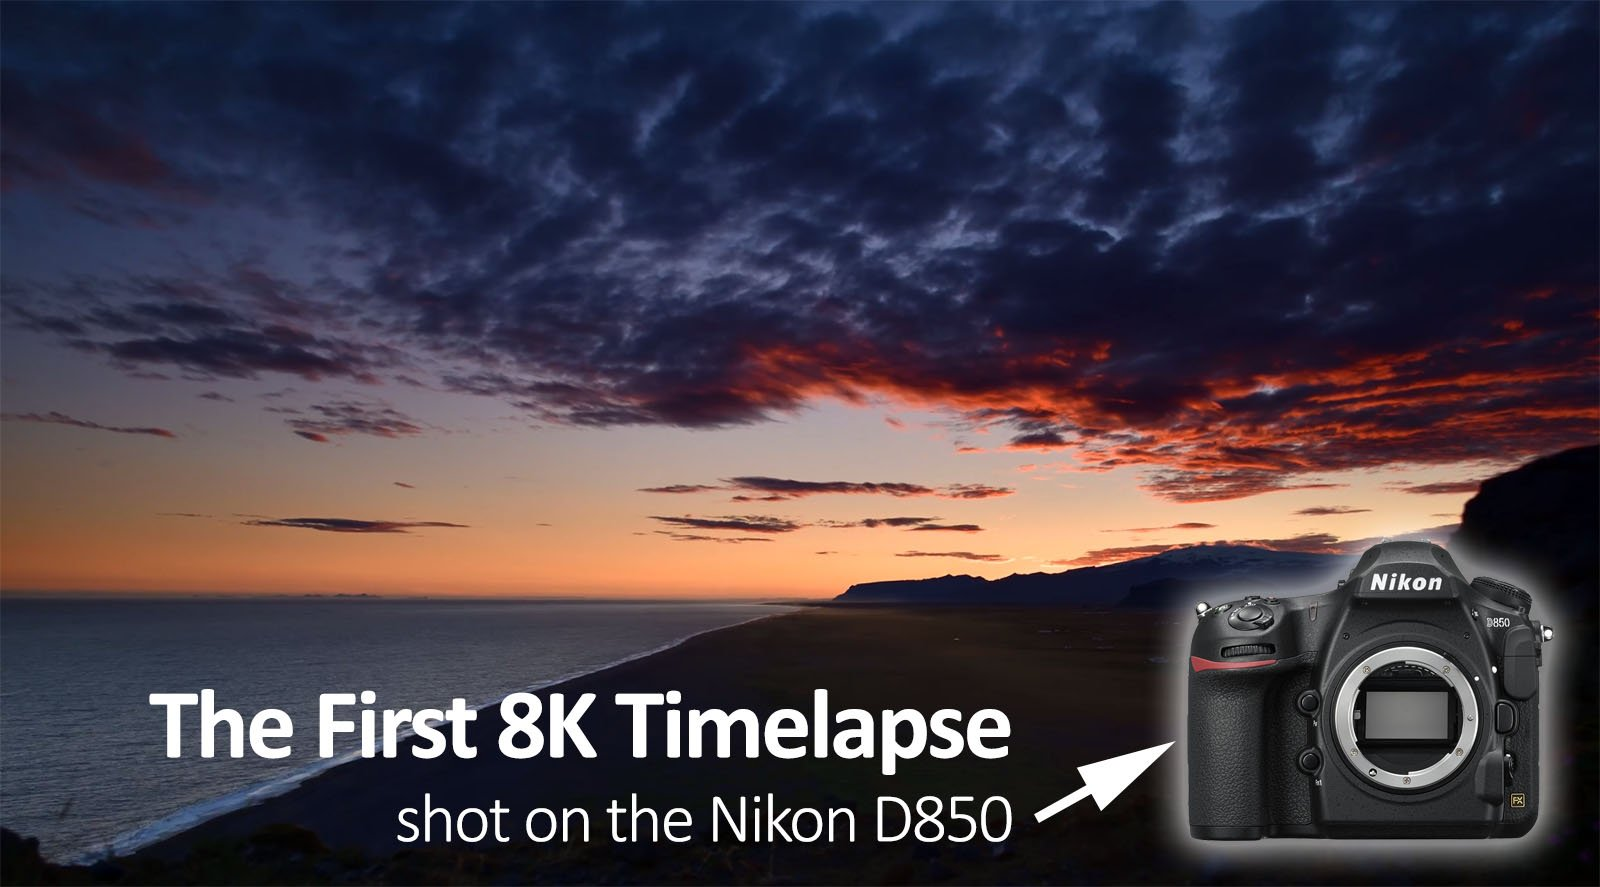 Heres The First 8k Timelapse Shot With The Nikon D850